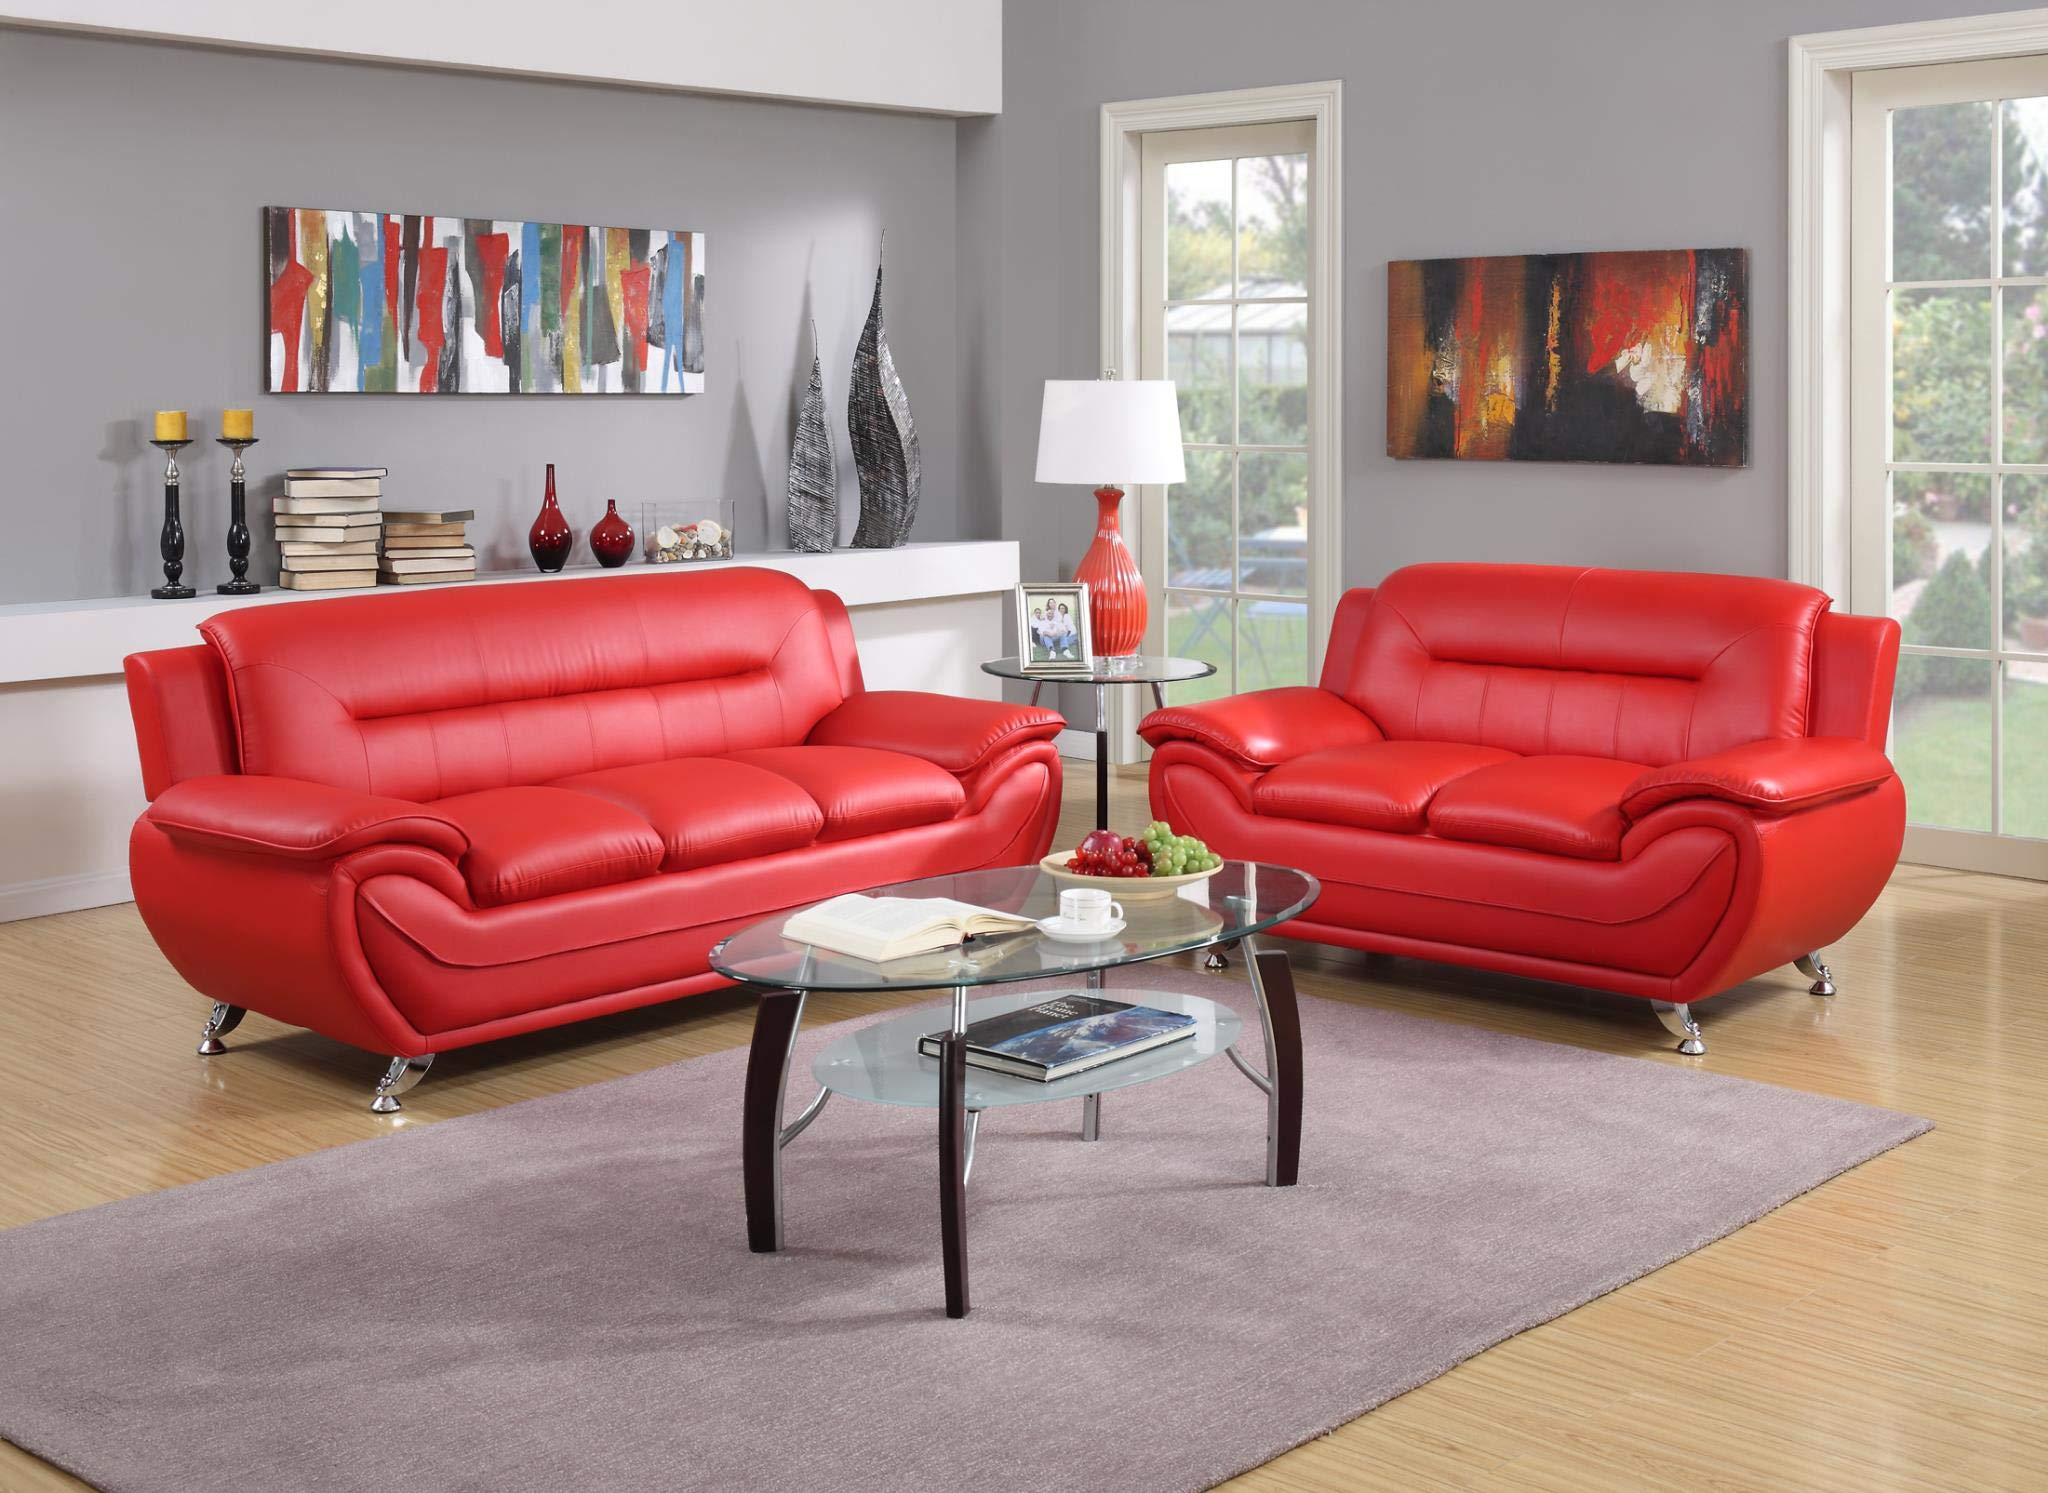 GTU Furniture 2 pc Contemporary PU Leather Sofa & Loveseat Set with 3pc Coffee Table Set (Red)